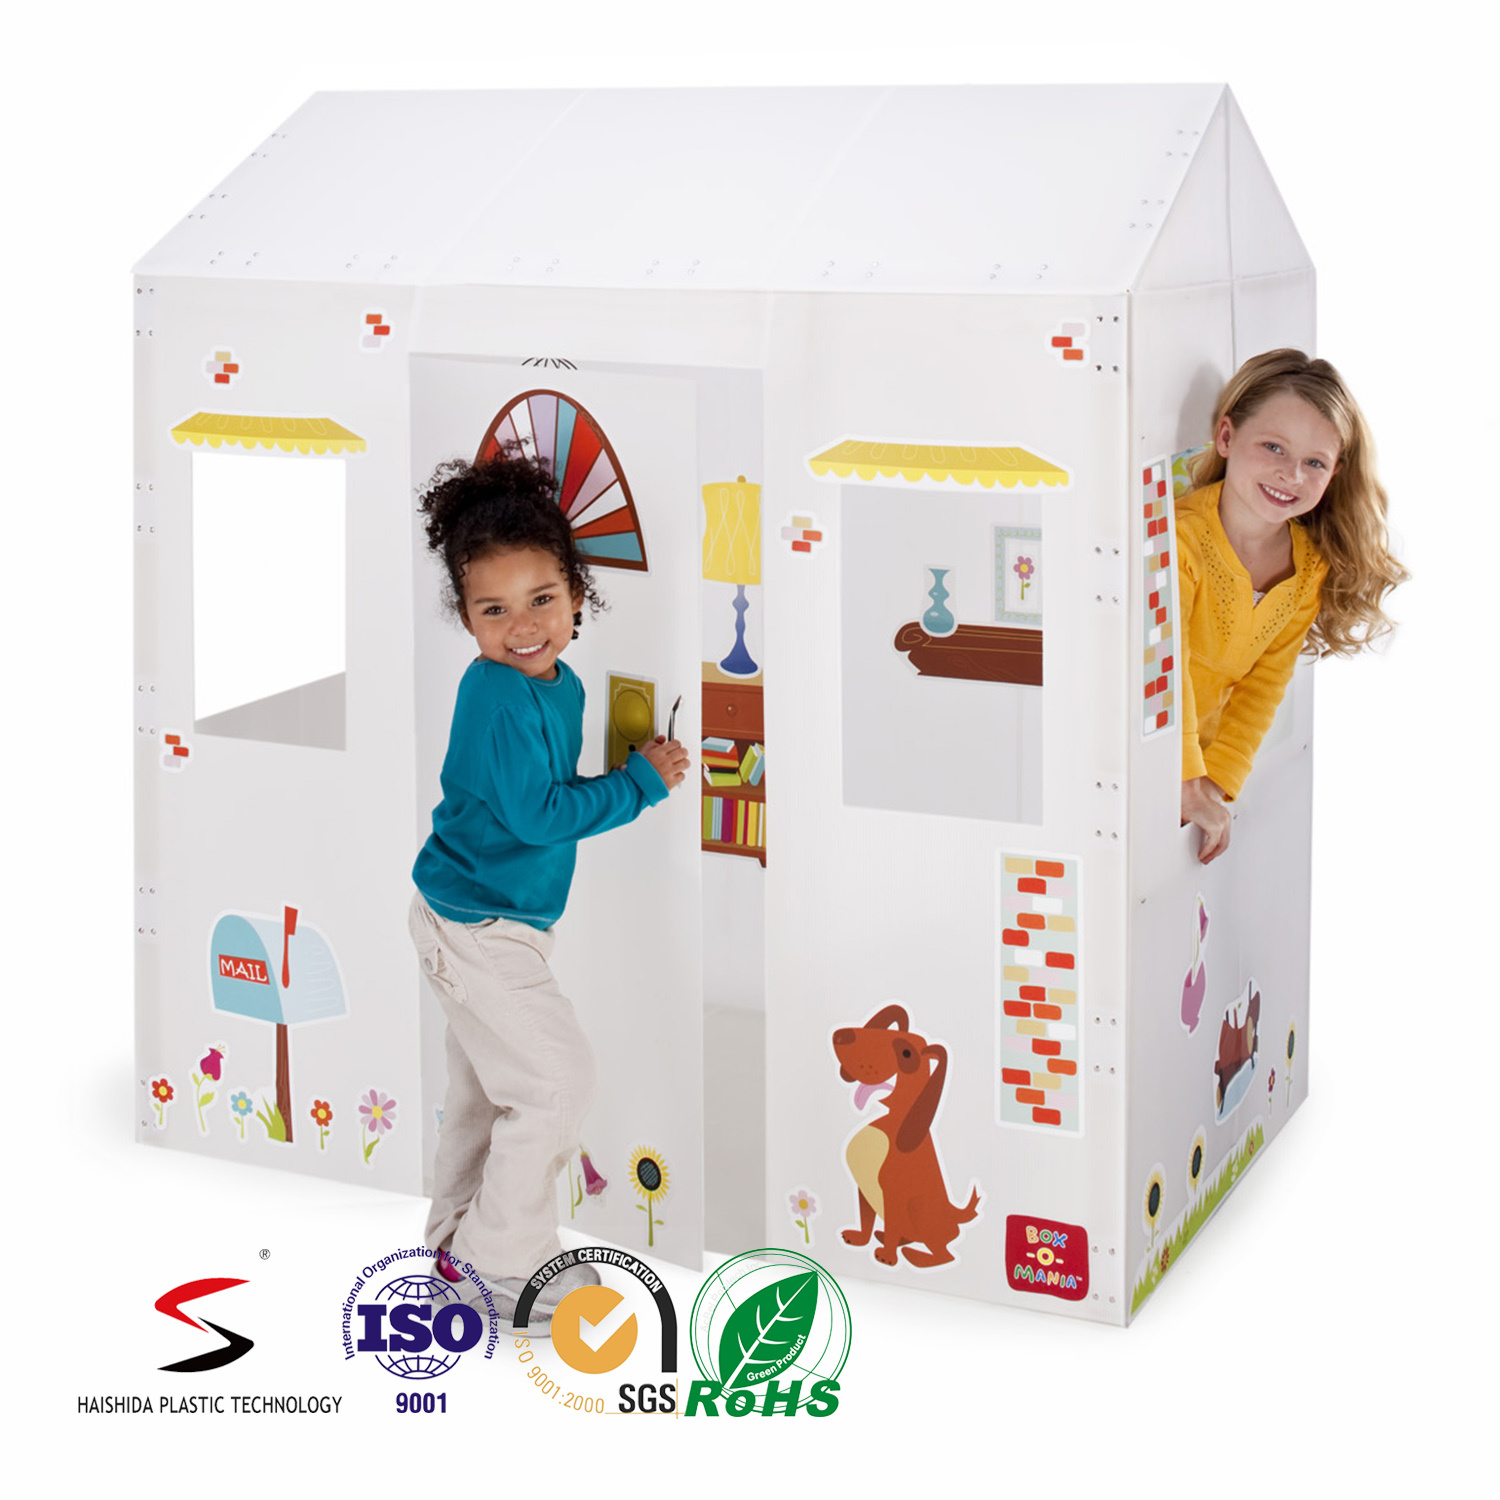 Explore Corrugated PP Plastic House for Children Play